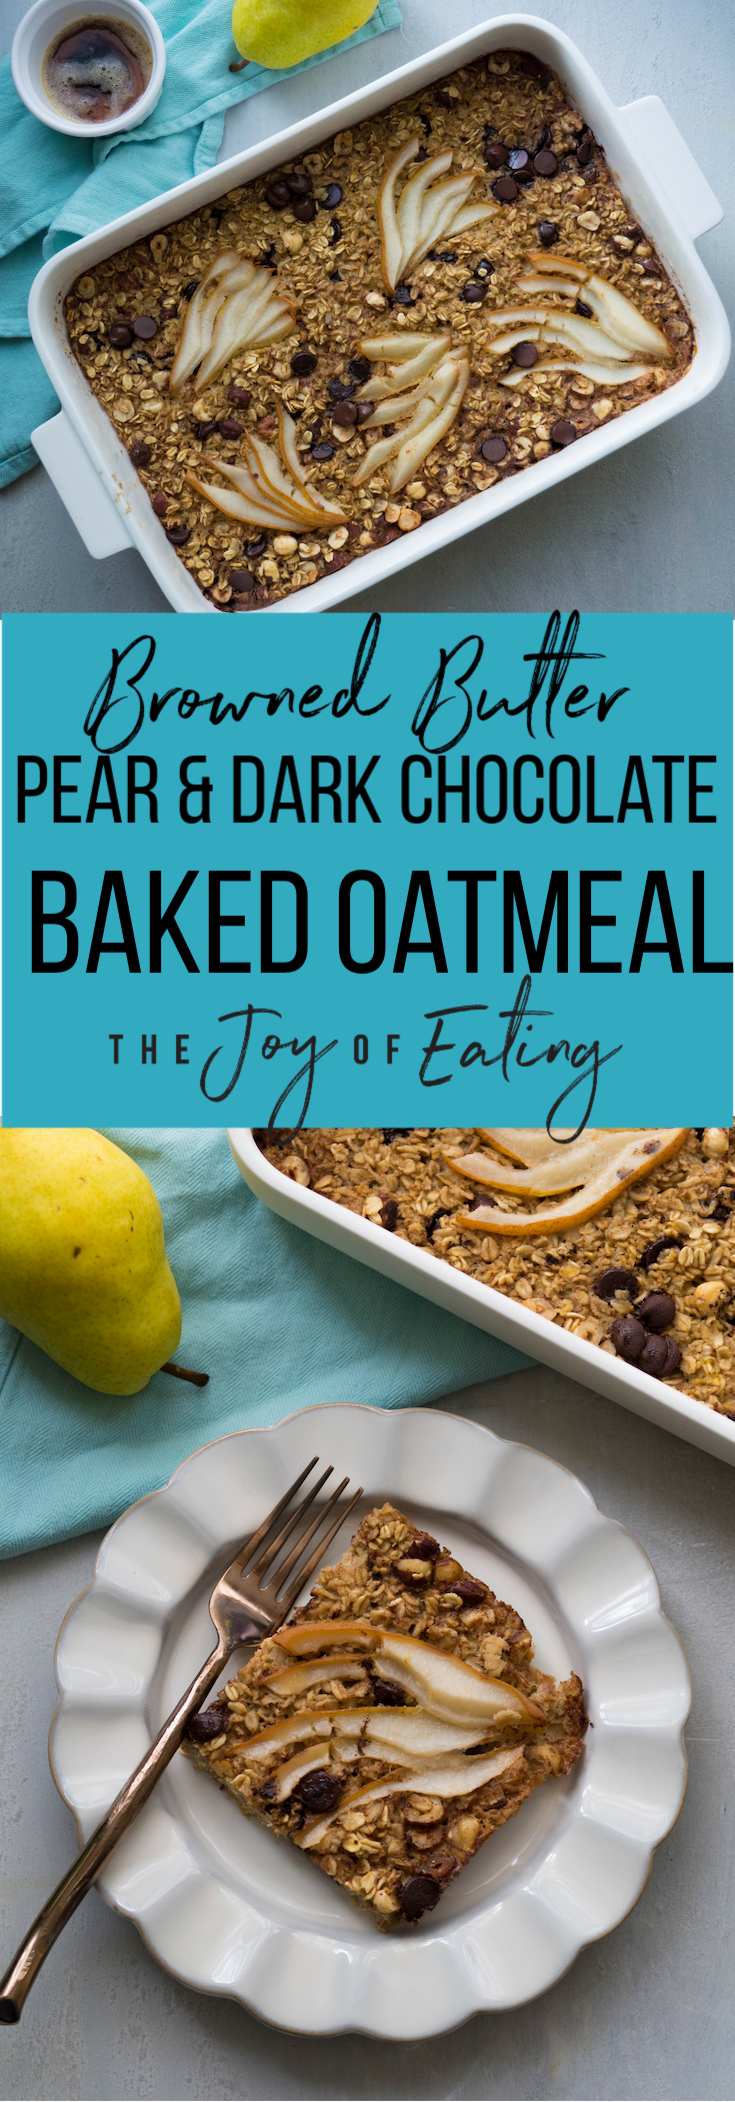 Browned Butter Pear and Dark Chocolate Baked Oatmeal is the BEST make ahead breakfast! #oatmeal #wholegrain #chocolate #breakfast #pear #fall